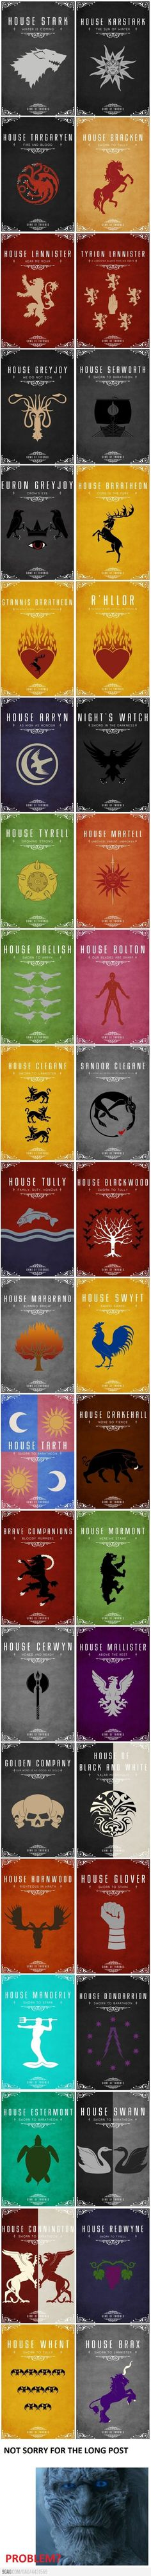 The Houses, companies and some extras in the Game Of Thronesverse: